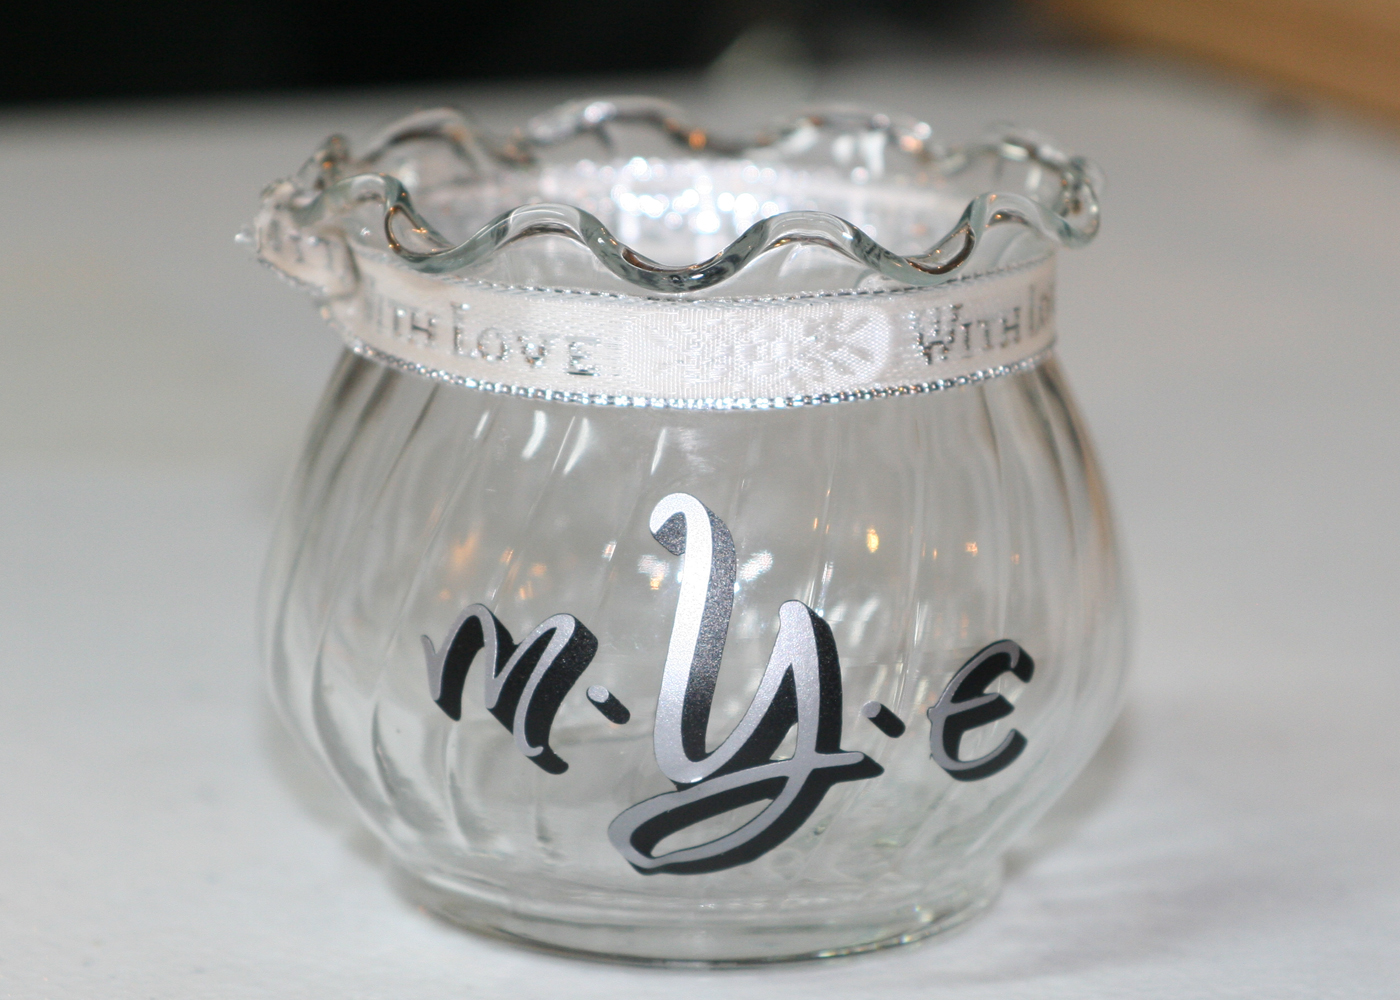 monogram-vinyl-lettering-with-dots-for-jars-glasses.jpg